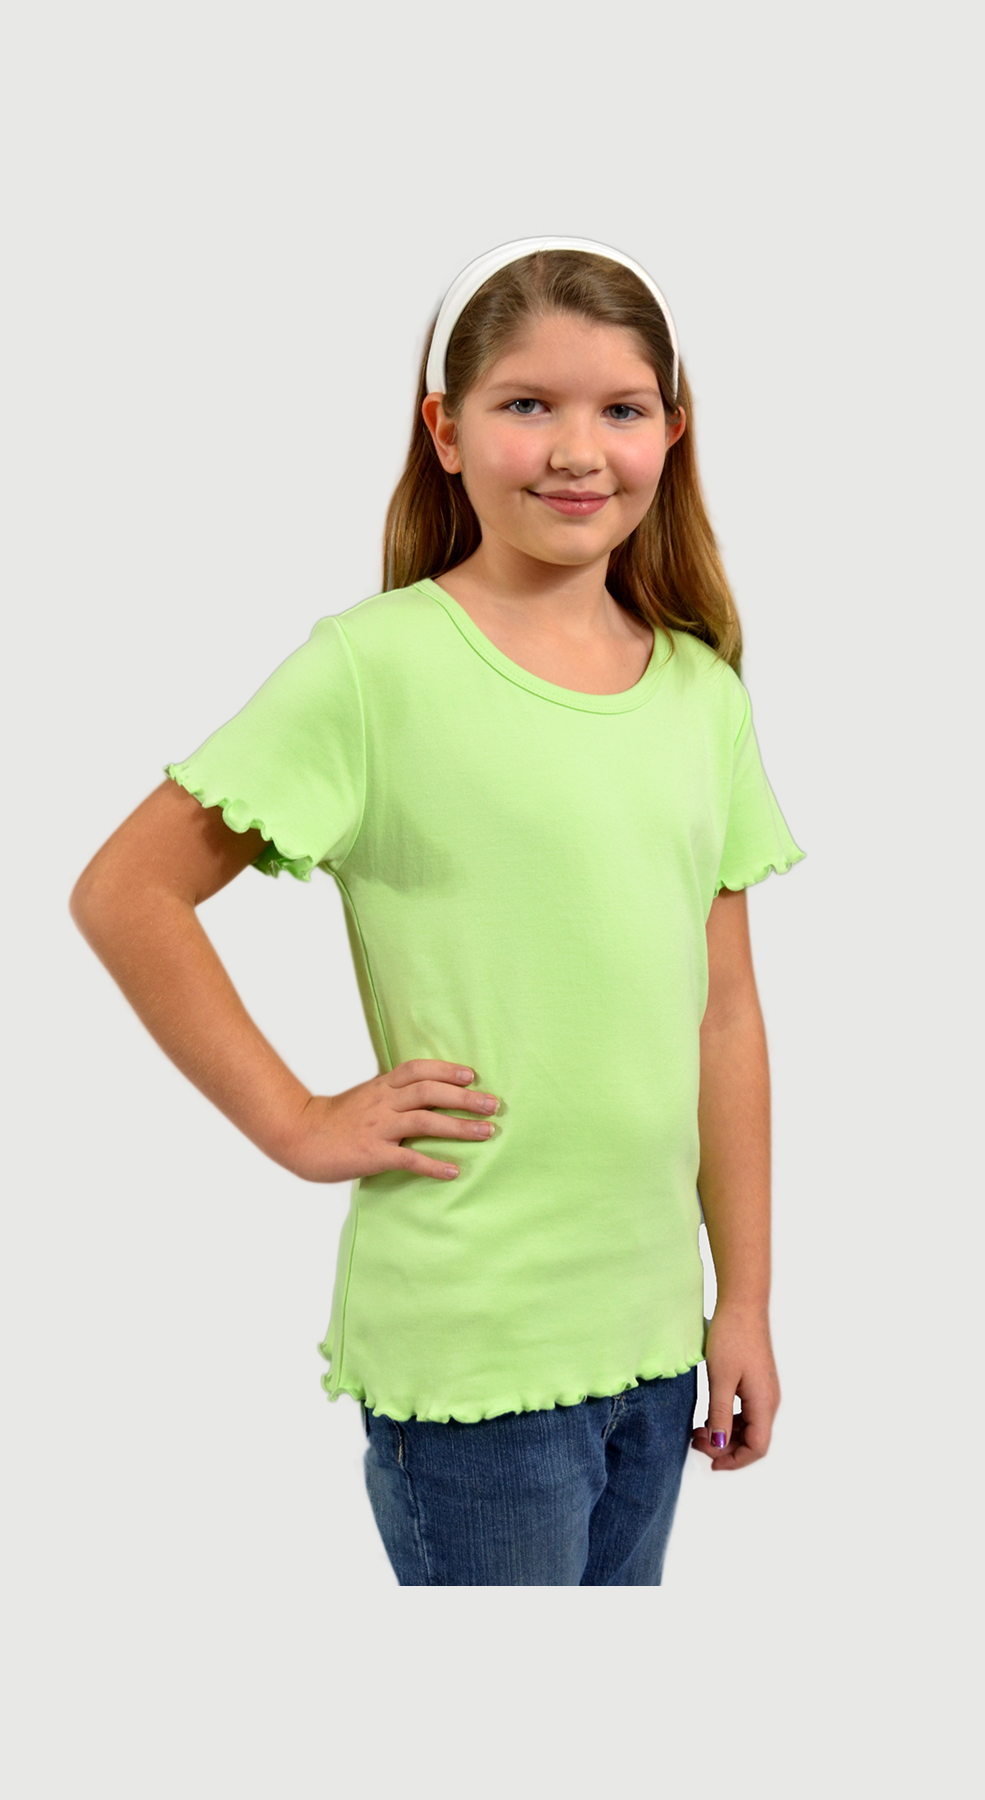 Monag 400012 - Interlock Lettuce Short Sleeve Girly ...